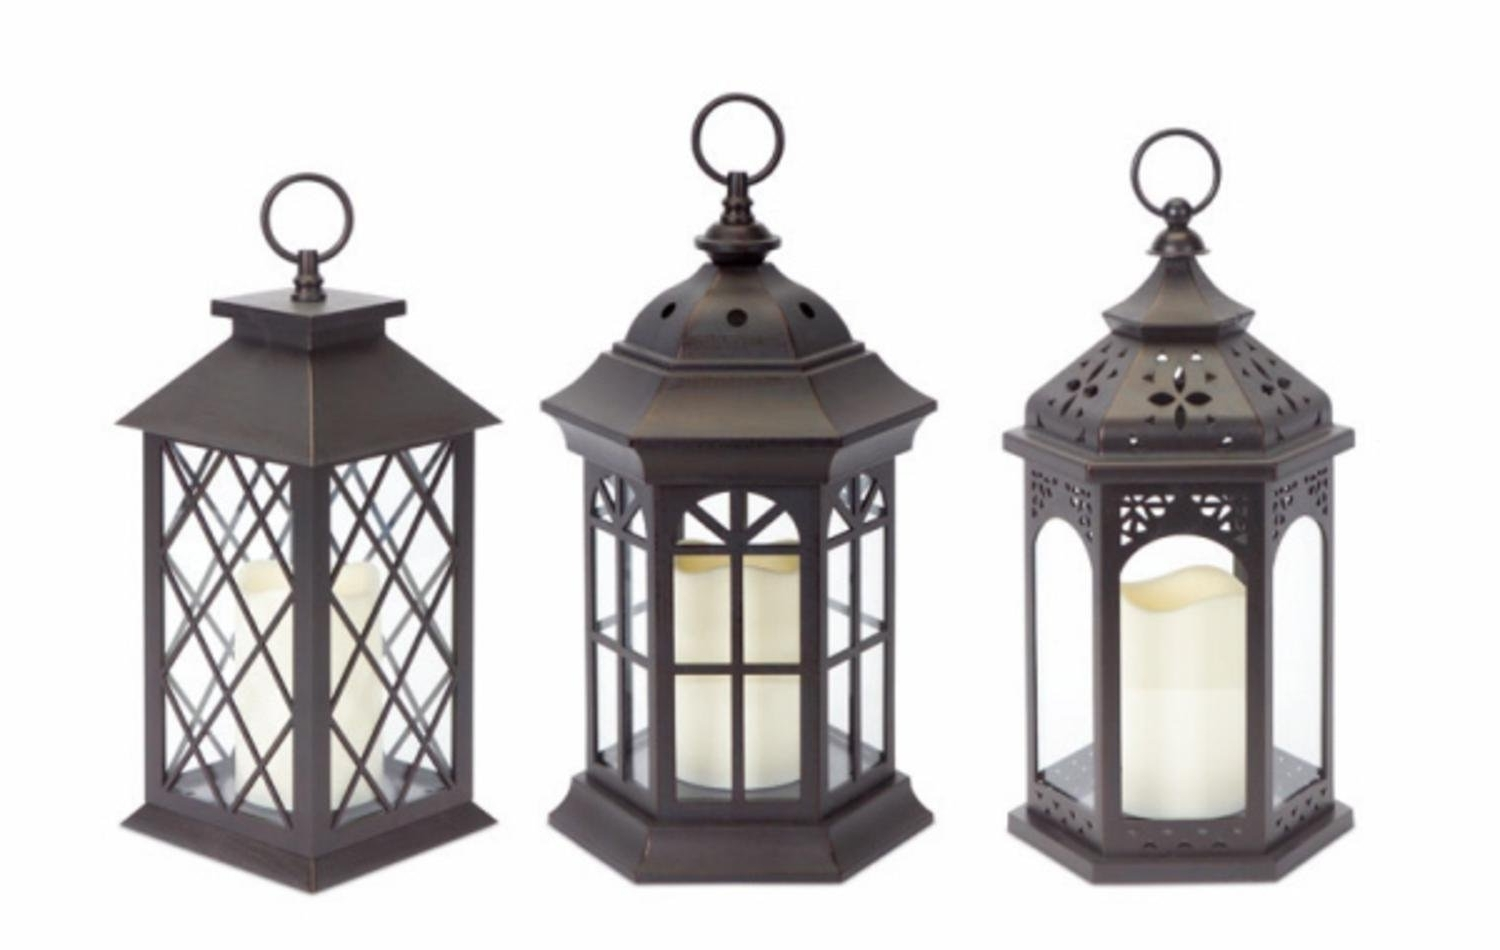 Cheap Outdoor Lanterns Candle, Find Outdoor Lanterns Candle Deals On With Well Known Cheap Outdoor Lanterns (View 2 of 20)